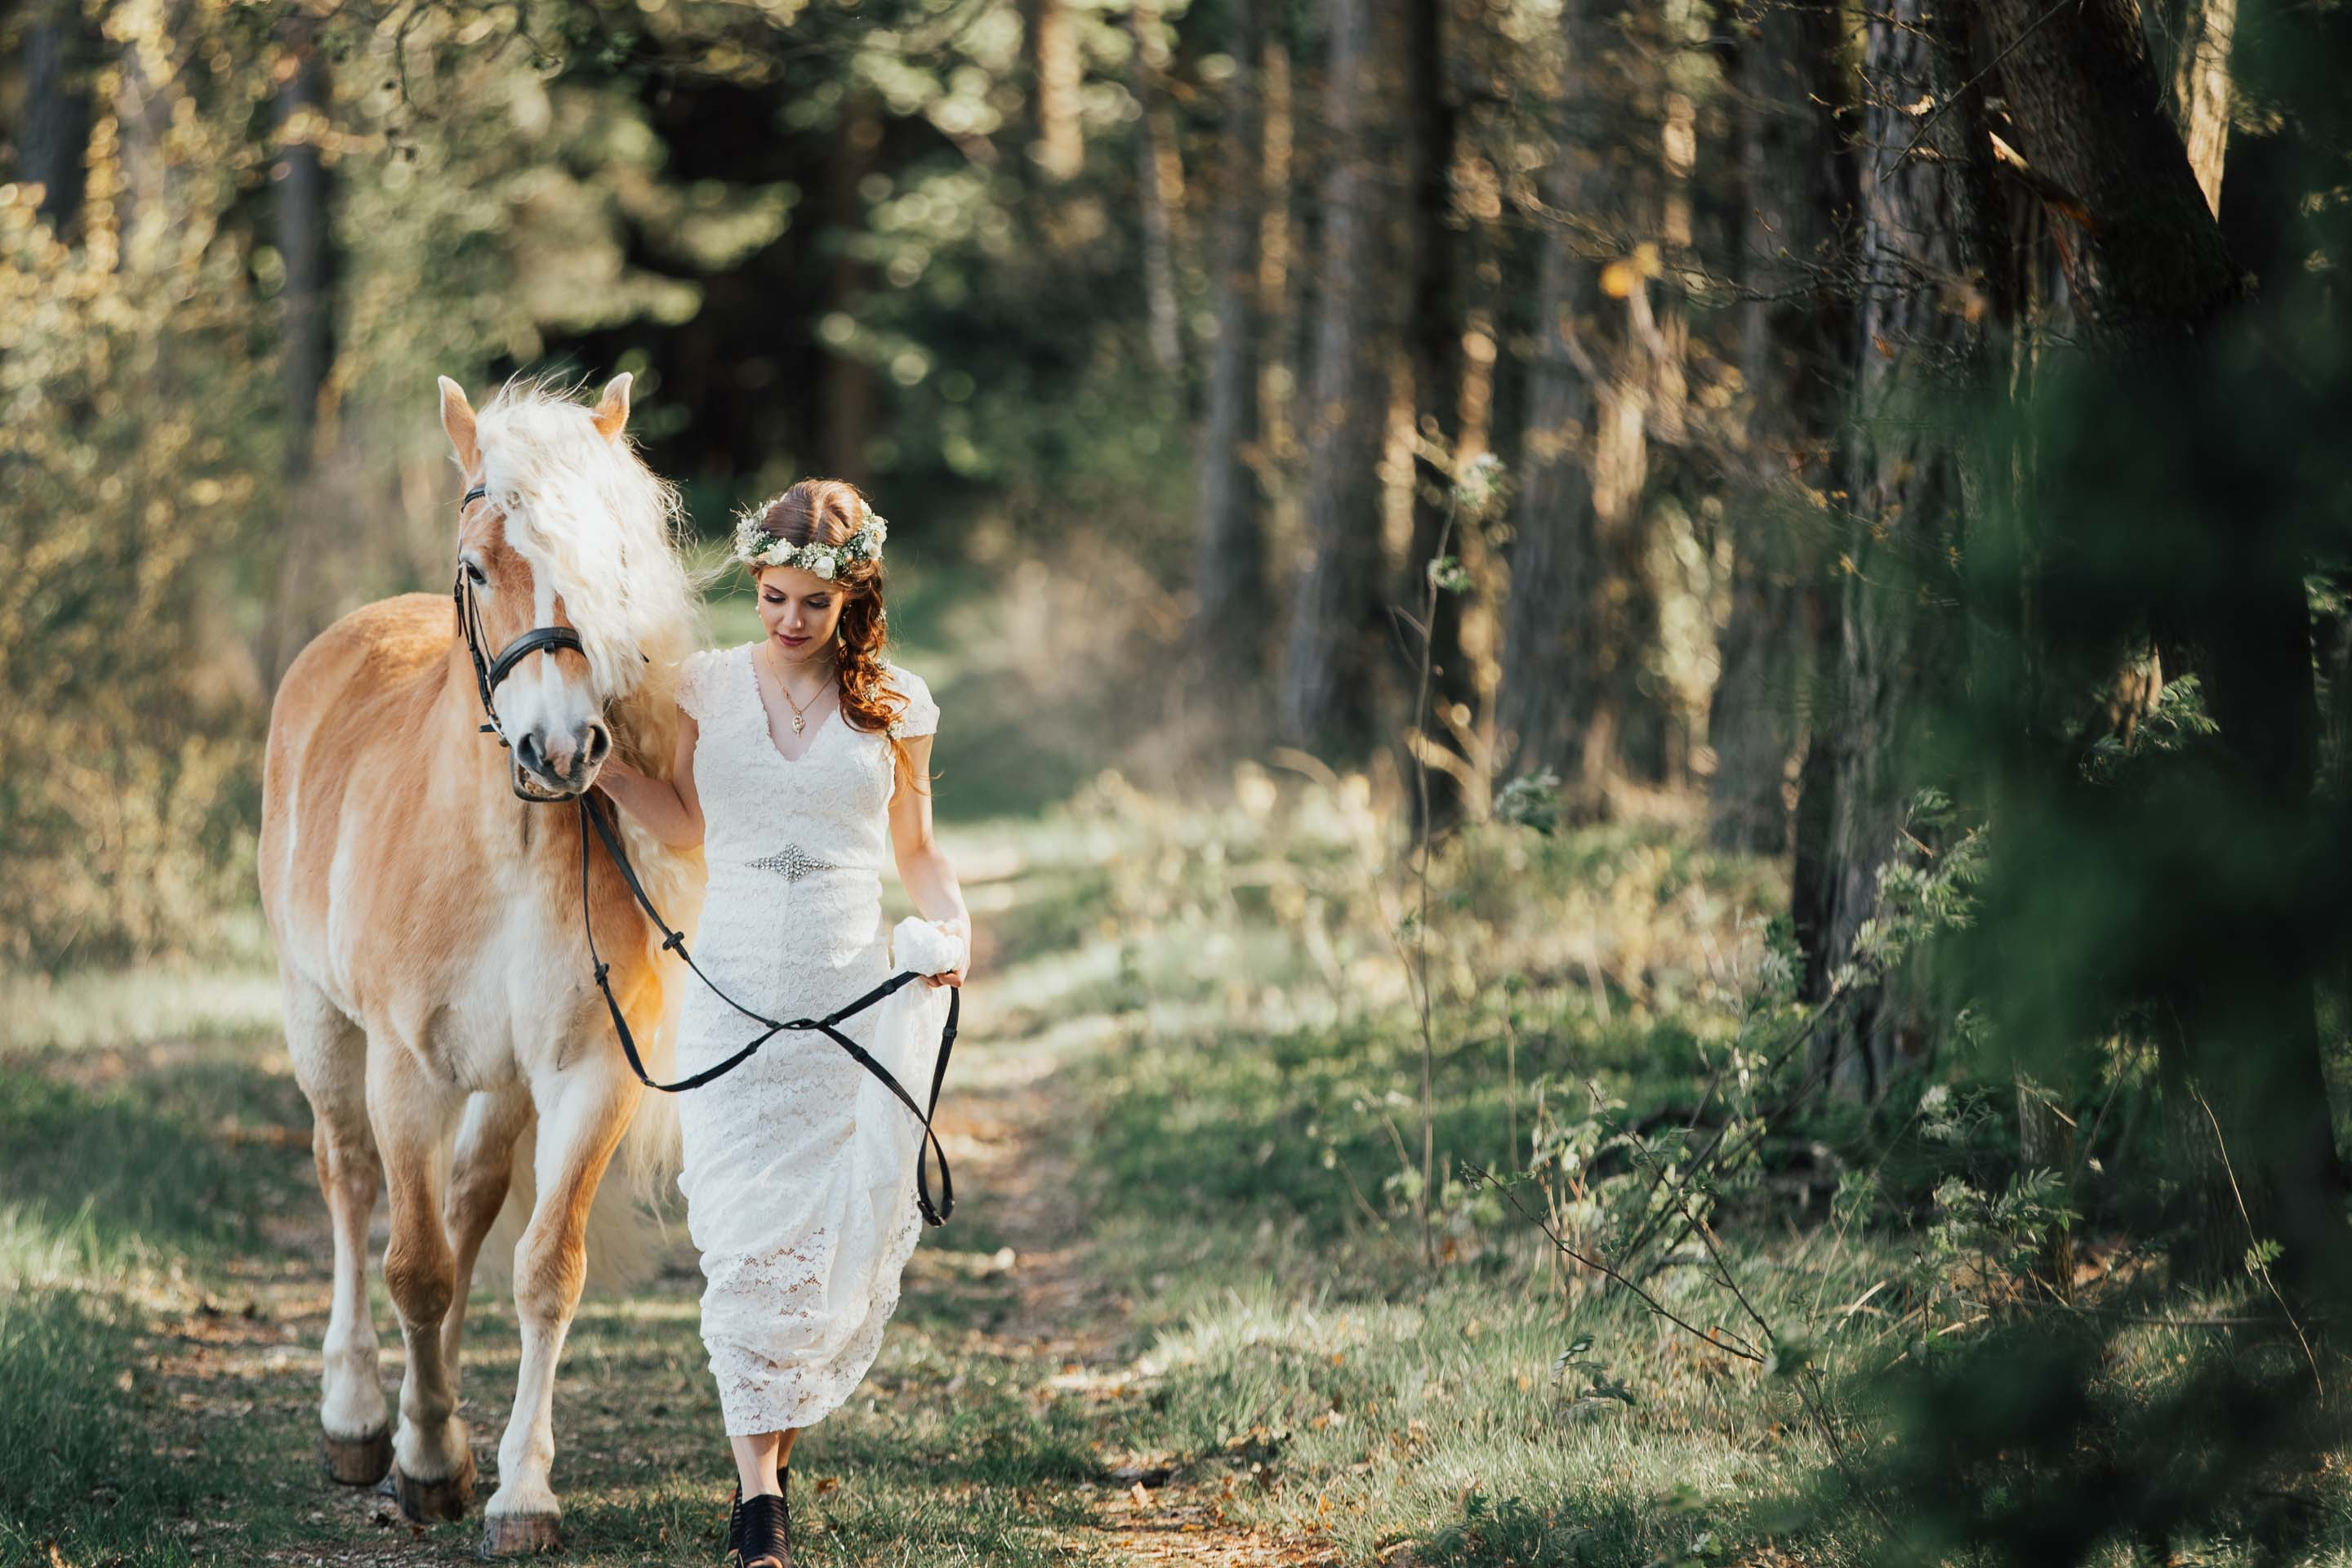 wedding-in-the-forest-horse